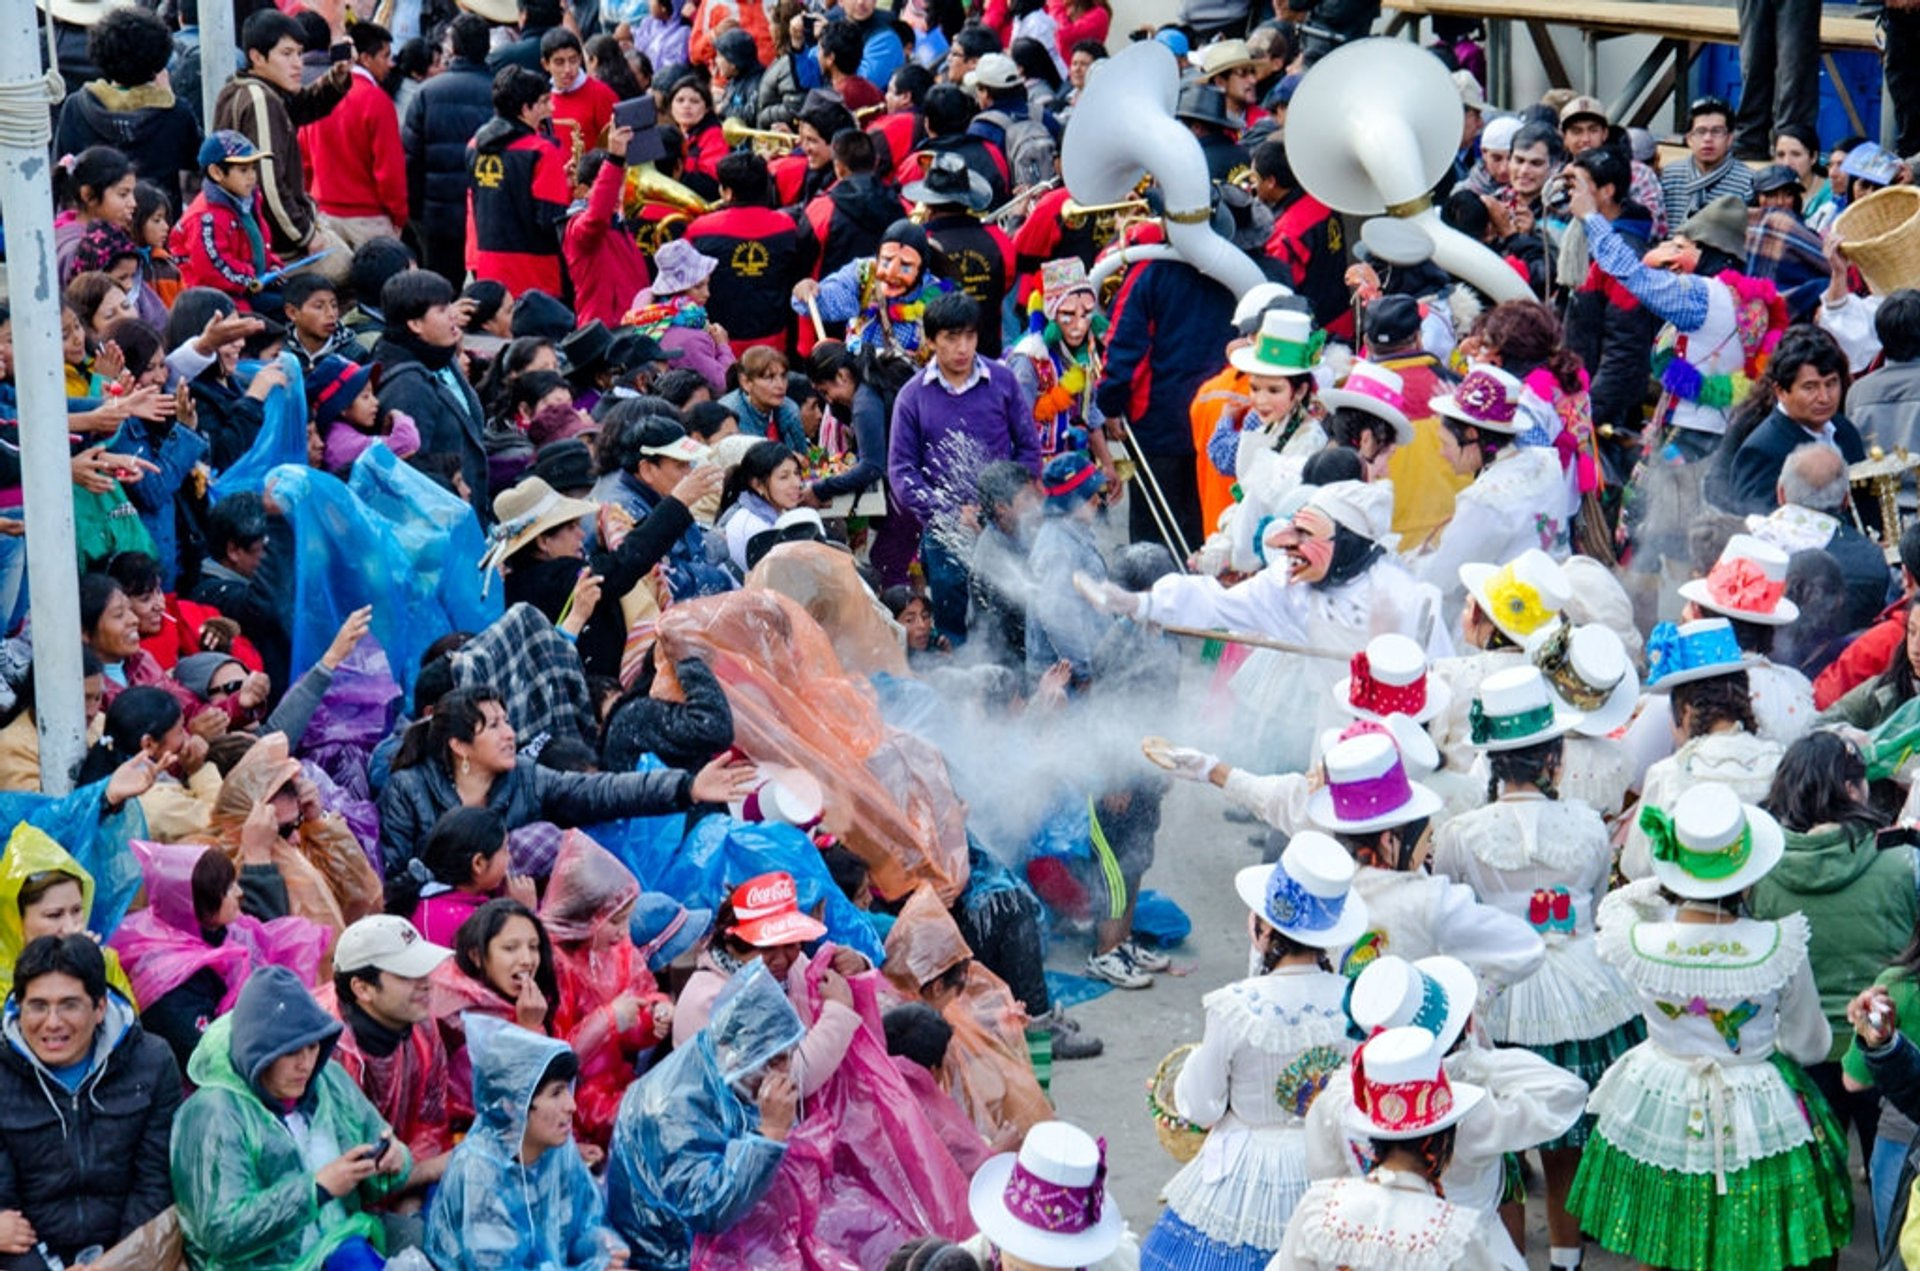 Best time to see Paucartambo Festival in Peru 2019